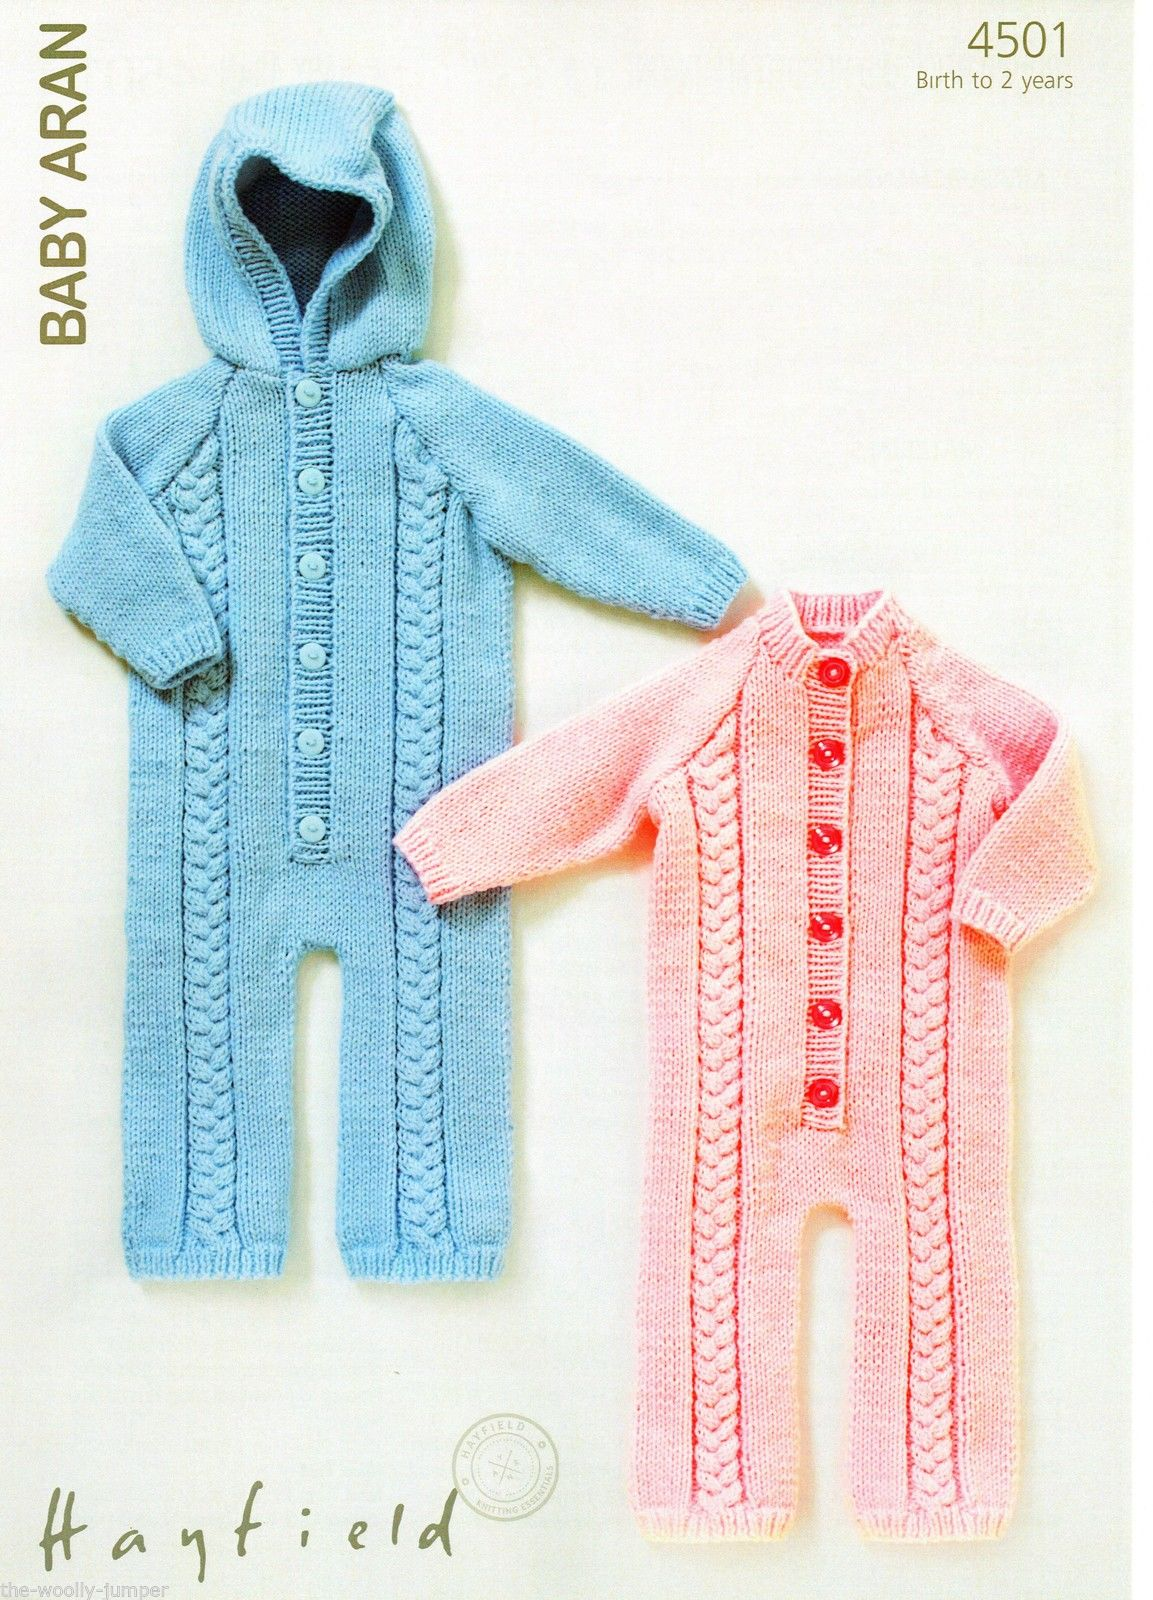 Knitting Pattern Baby All In One : 4501 - HAYFIELD BABY ARAN ALL-IN-ONE ONSEIE KNITTING ...